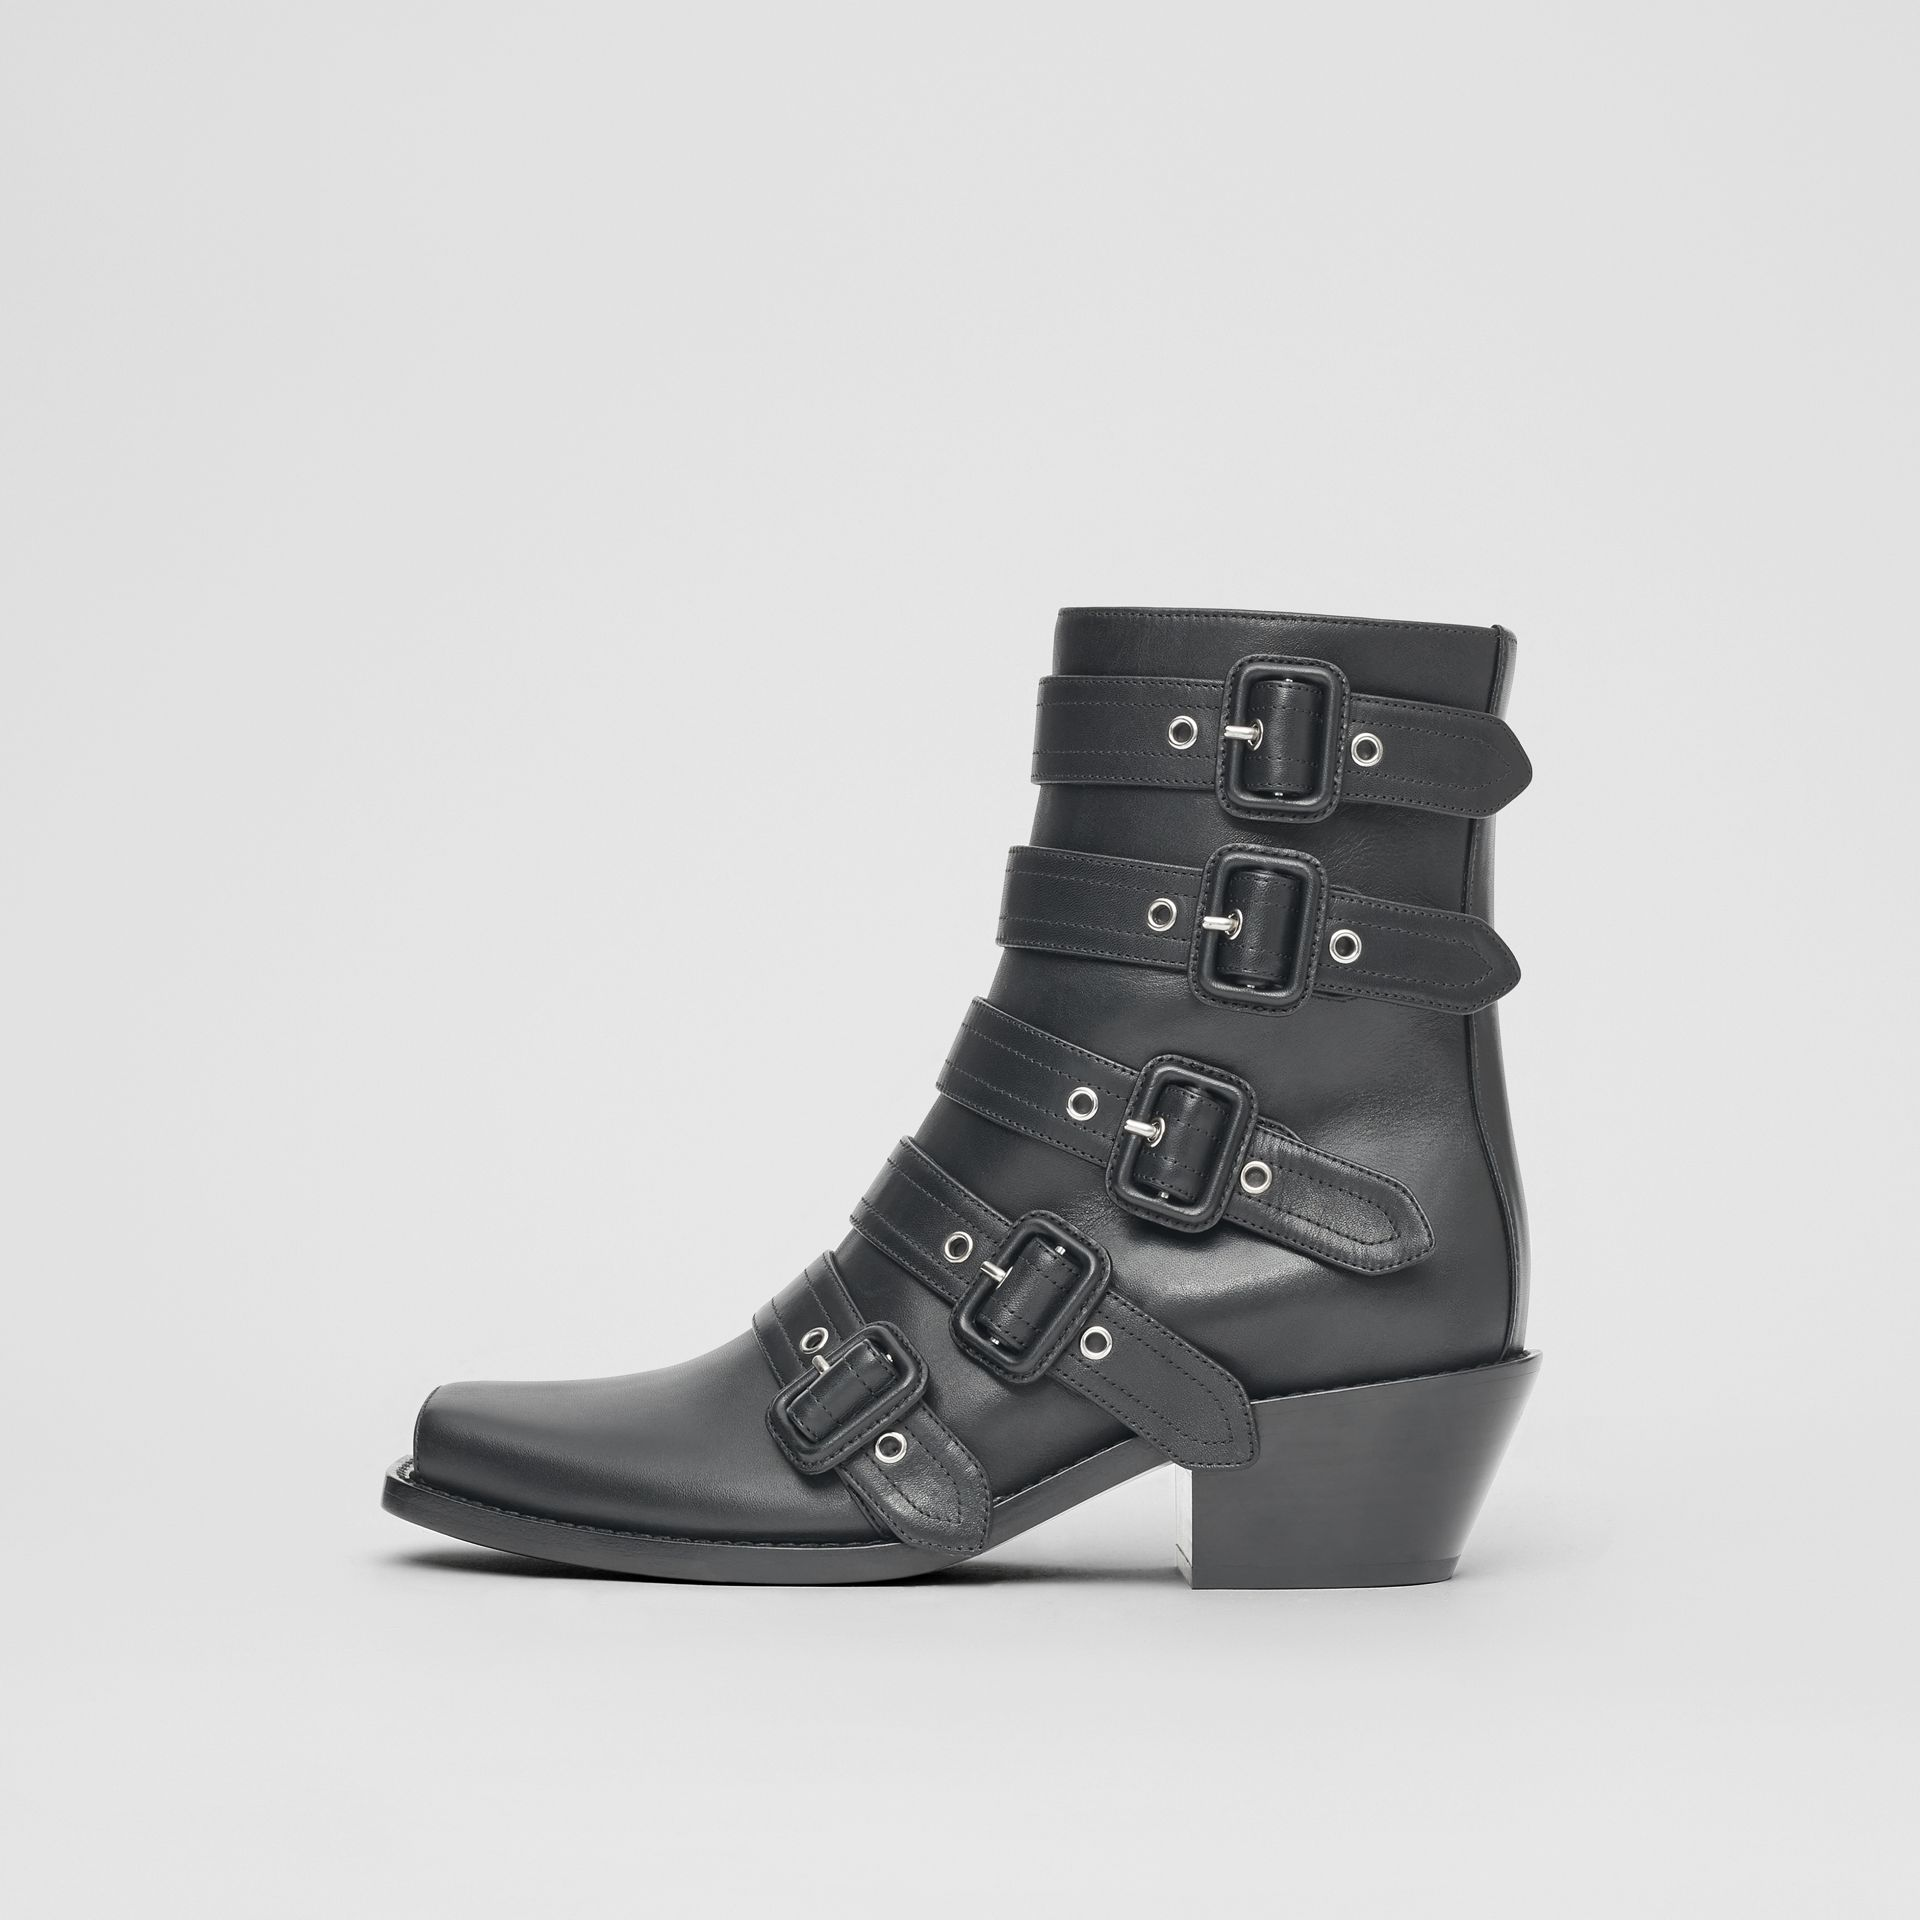 Buckled Leather Peep-toe Ankle Boots in Black - Women | Burberry United Kingdom - gallery image 7